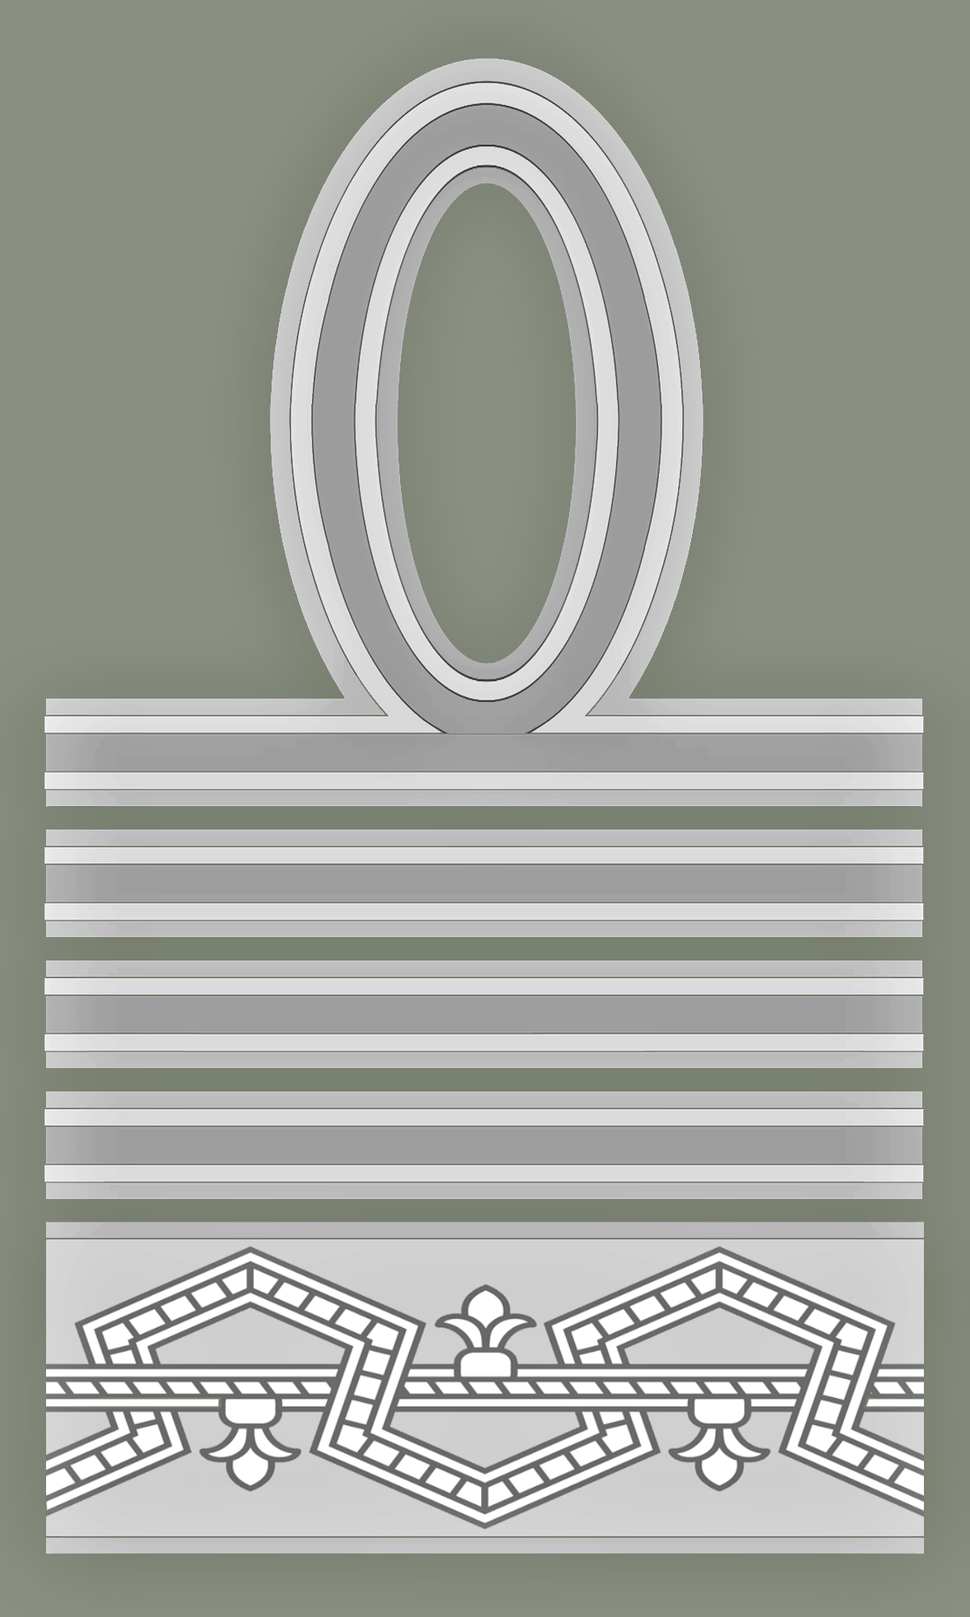 Rank insignia of maresciallo d'Italia of the Italian Army (1940)